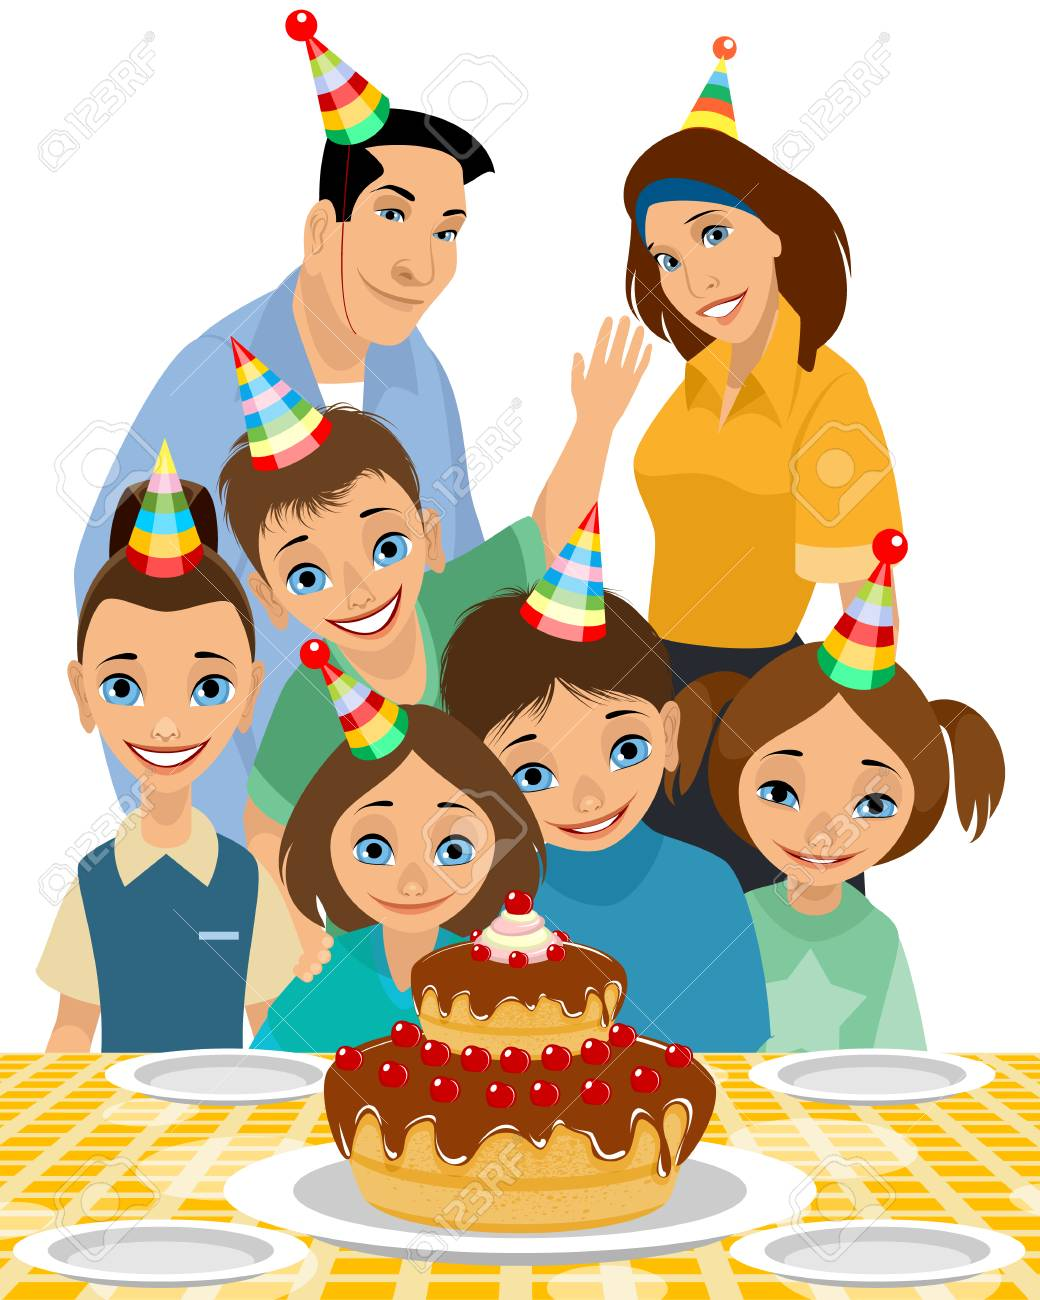 Vector illustration of family of the birthday child.